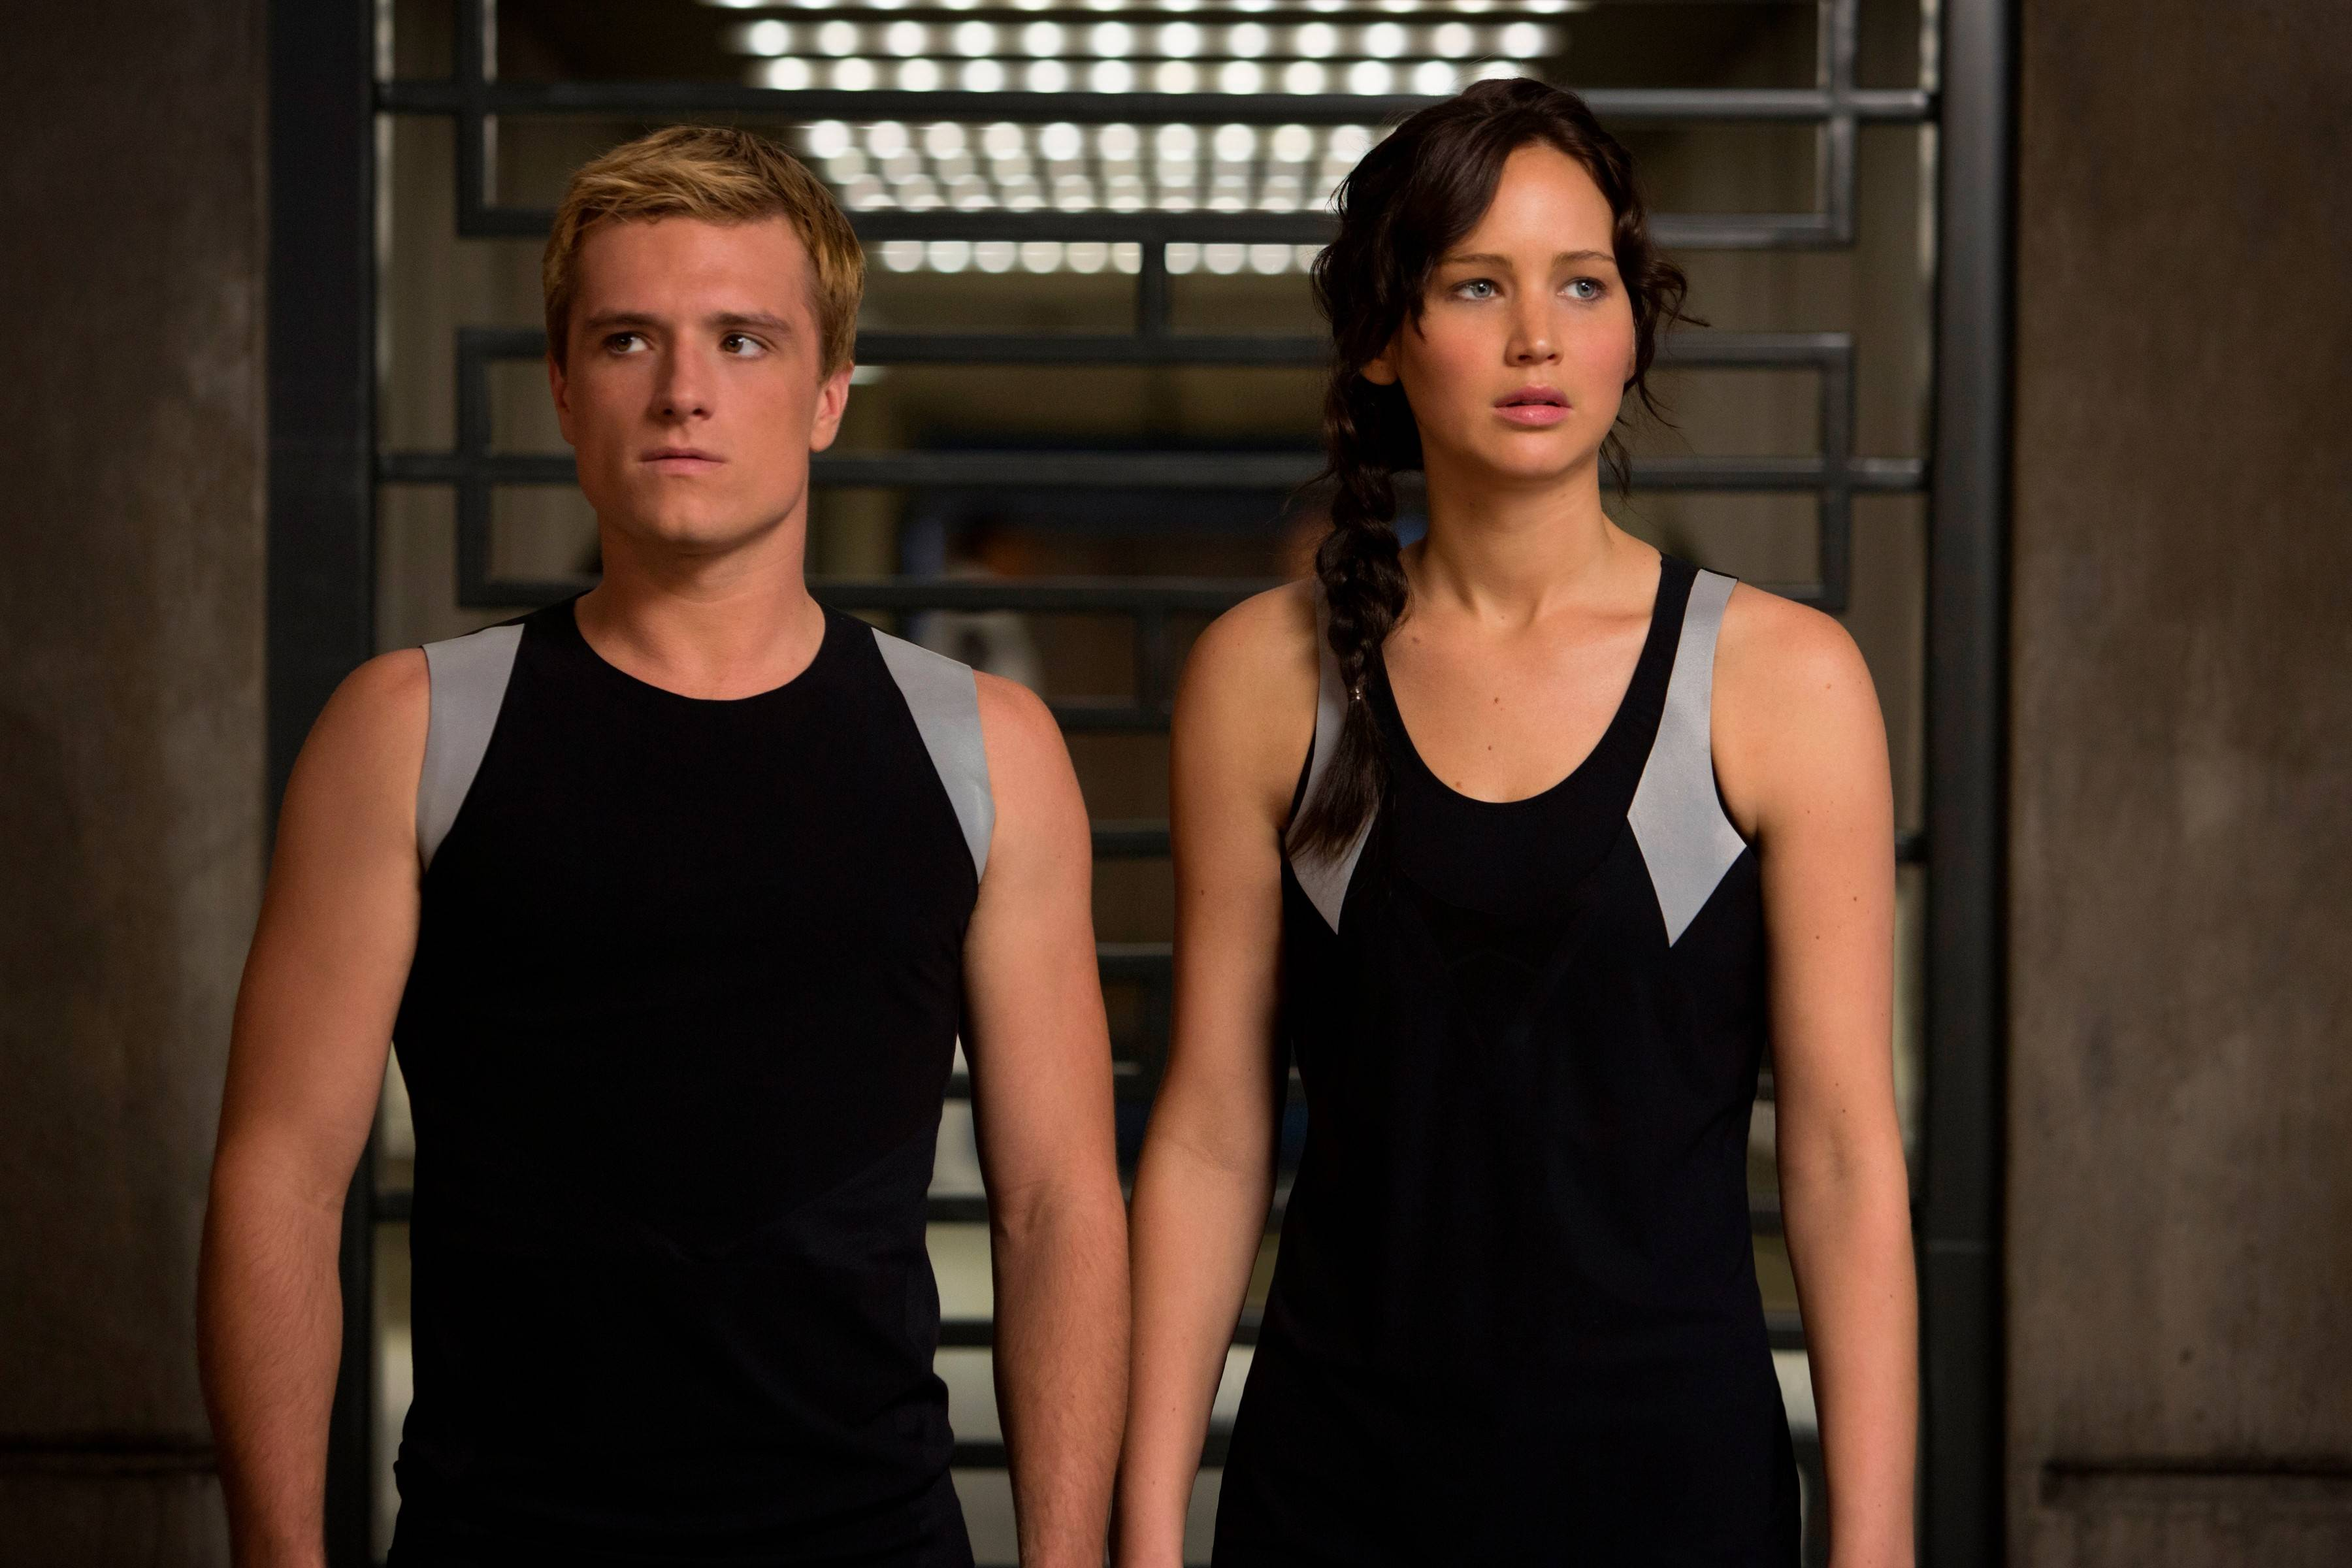 """The Hunger Games: Catching Fire"" -- starring Josh Hutcherson as Peeta Mellark and Jennifer Lawrence as Katniss Everdeen -- will face off against ""12 Years a Slave"" at the MTV Movie Awards."